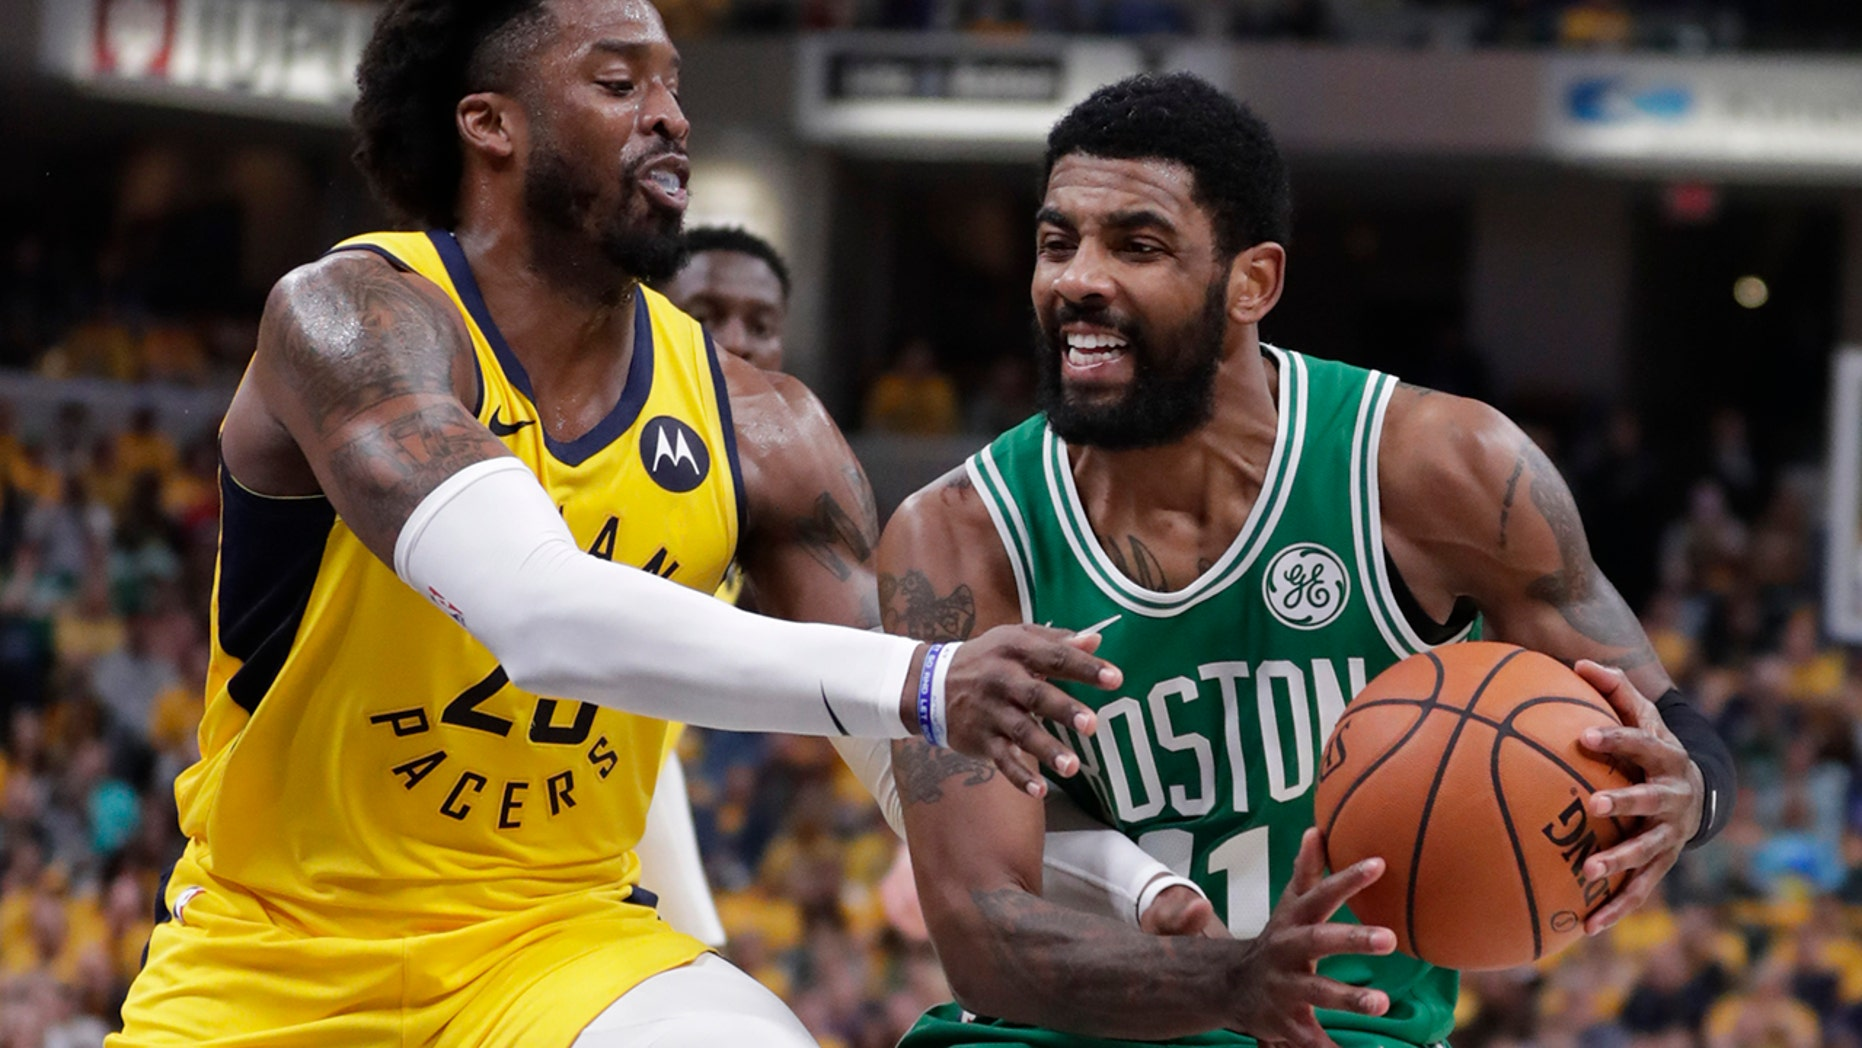 Westlake Legal Group NBA-Kyrie-Irving4 Celtics complete rare sweep by beating Pacers 110-106 fox-news/sports/nba/indiana-pacers fox-news/sports/nba/boston-celtics fox-news/sports/nba-playoffs fox-news/sports/nba fnc/sports fnc Associated Press article a8ff360a-8389-5adf-95cd-3bb9fbca2b47